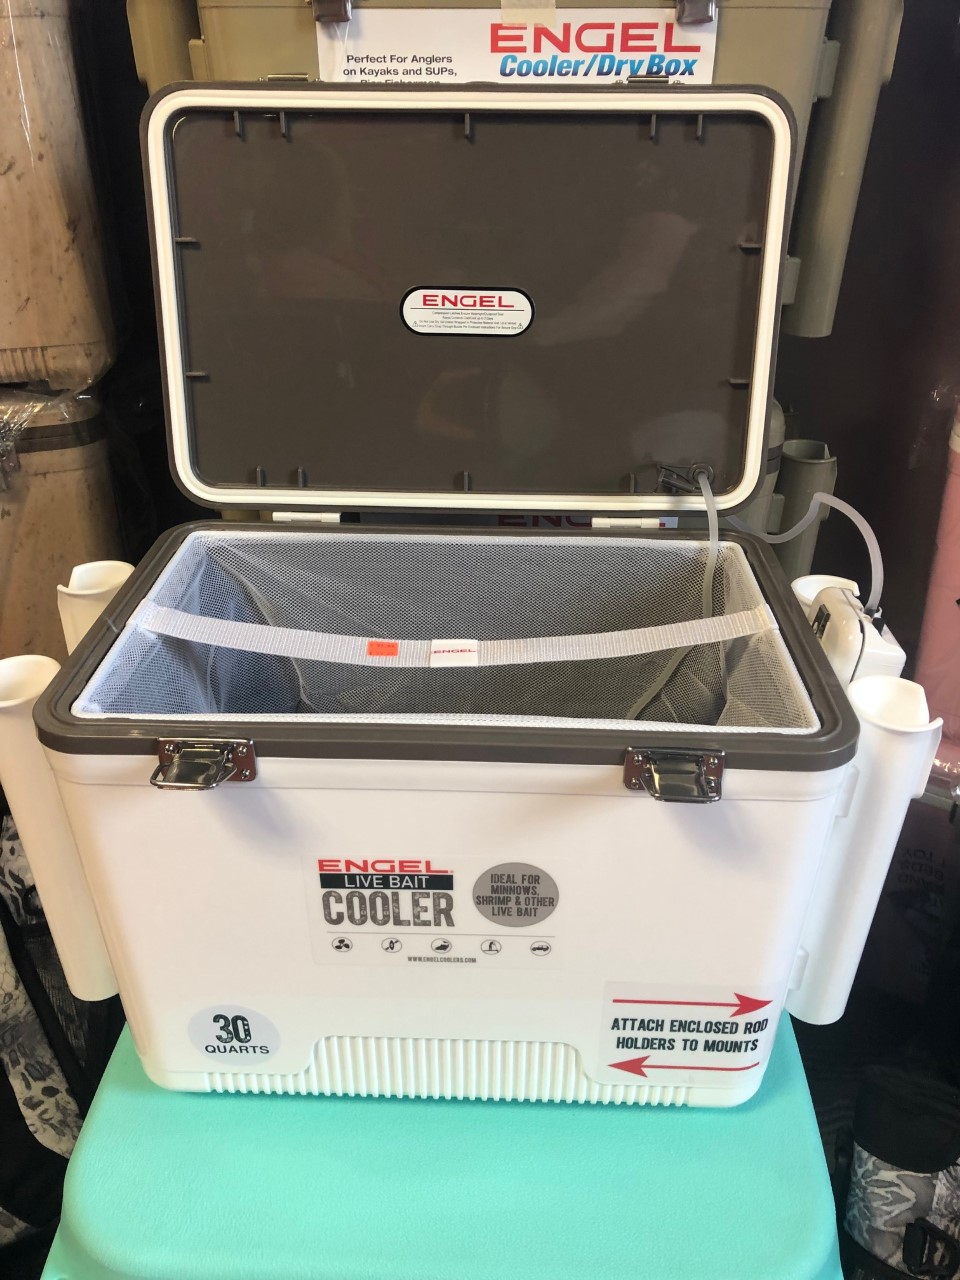 ENGEL COOLER/DRY BOX LIVE BAIT COOLERS